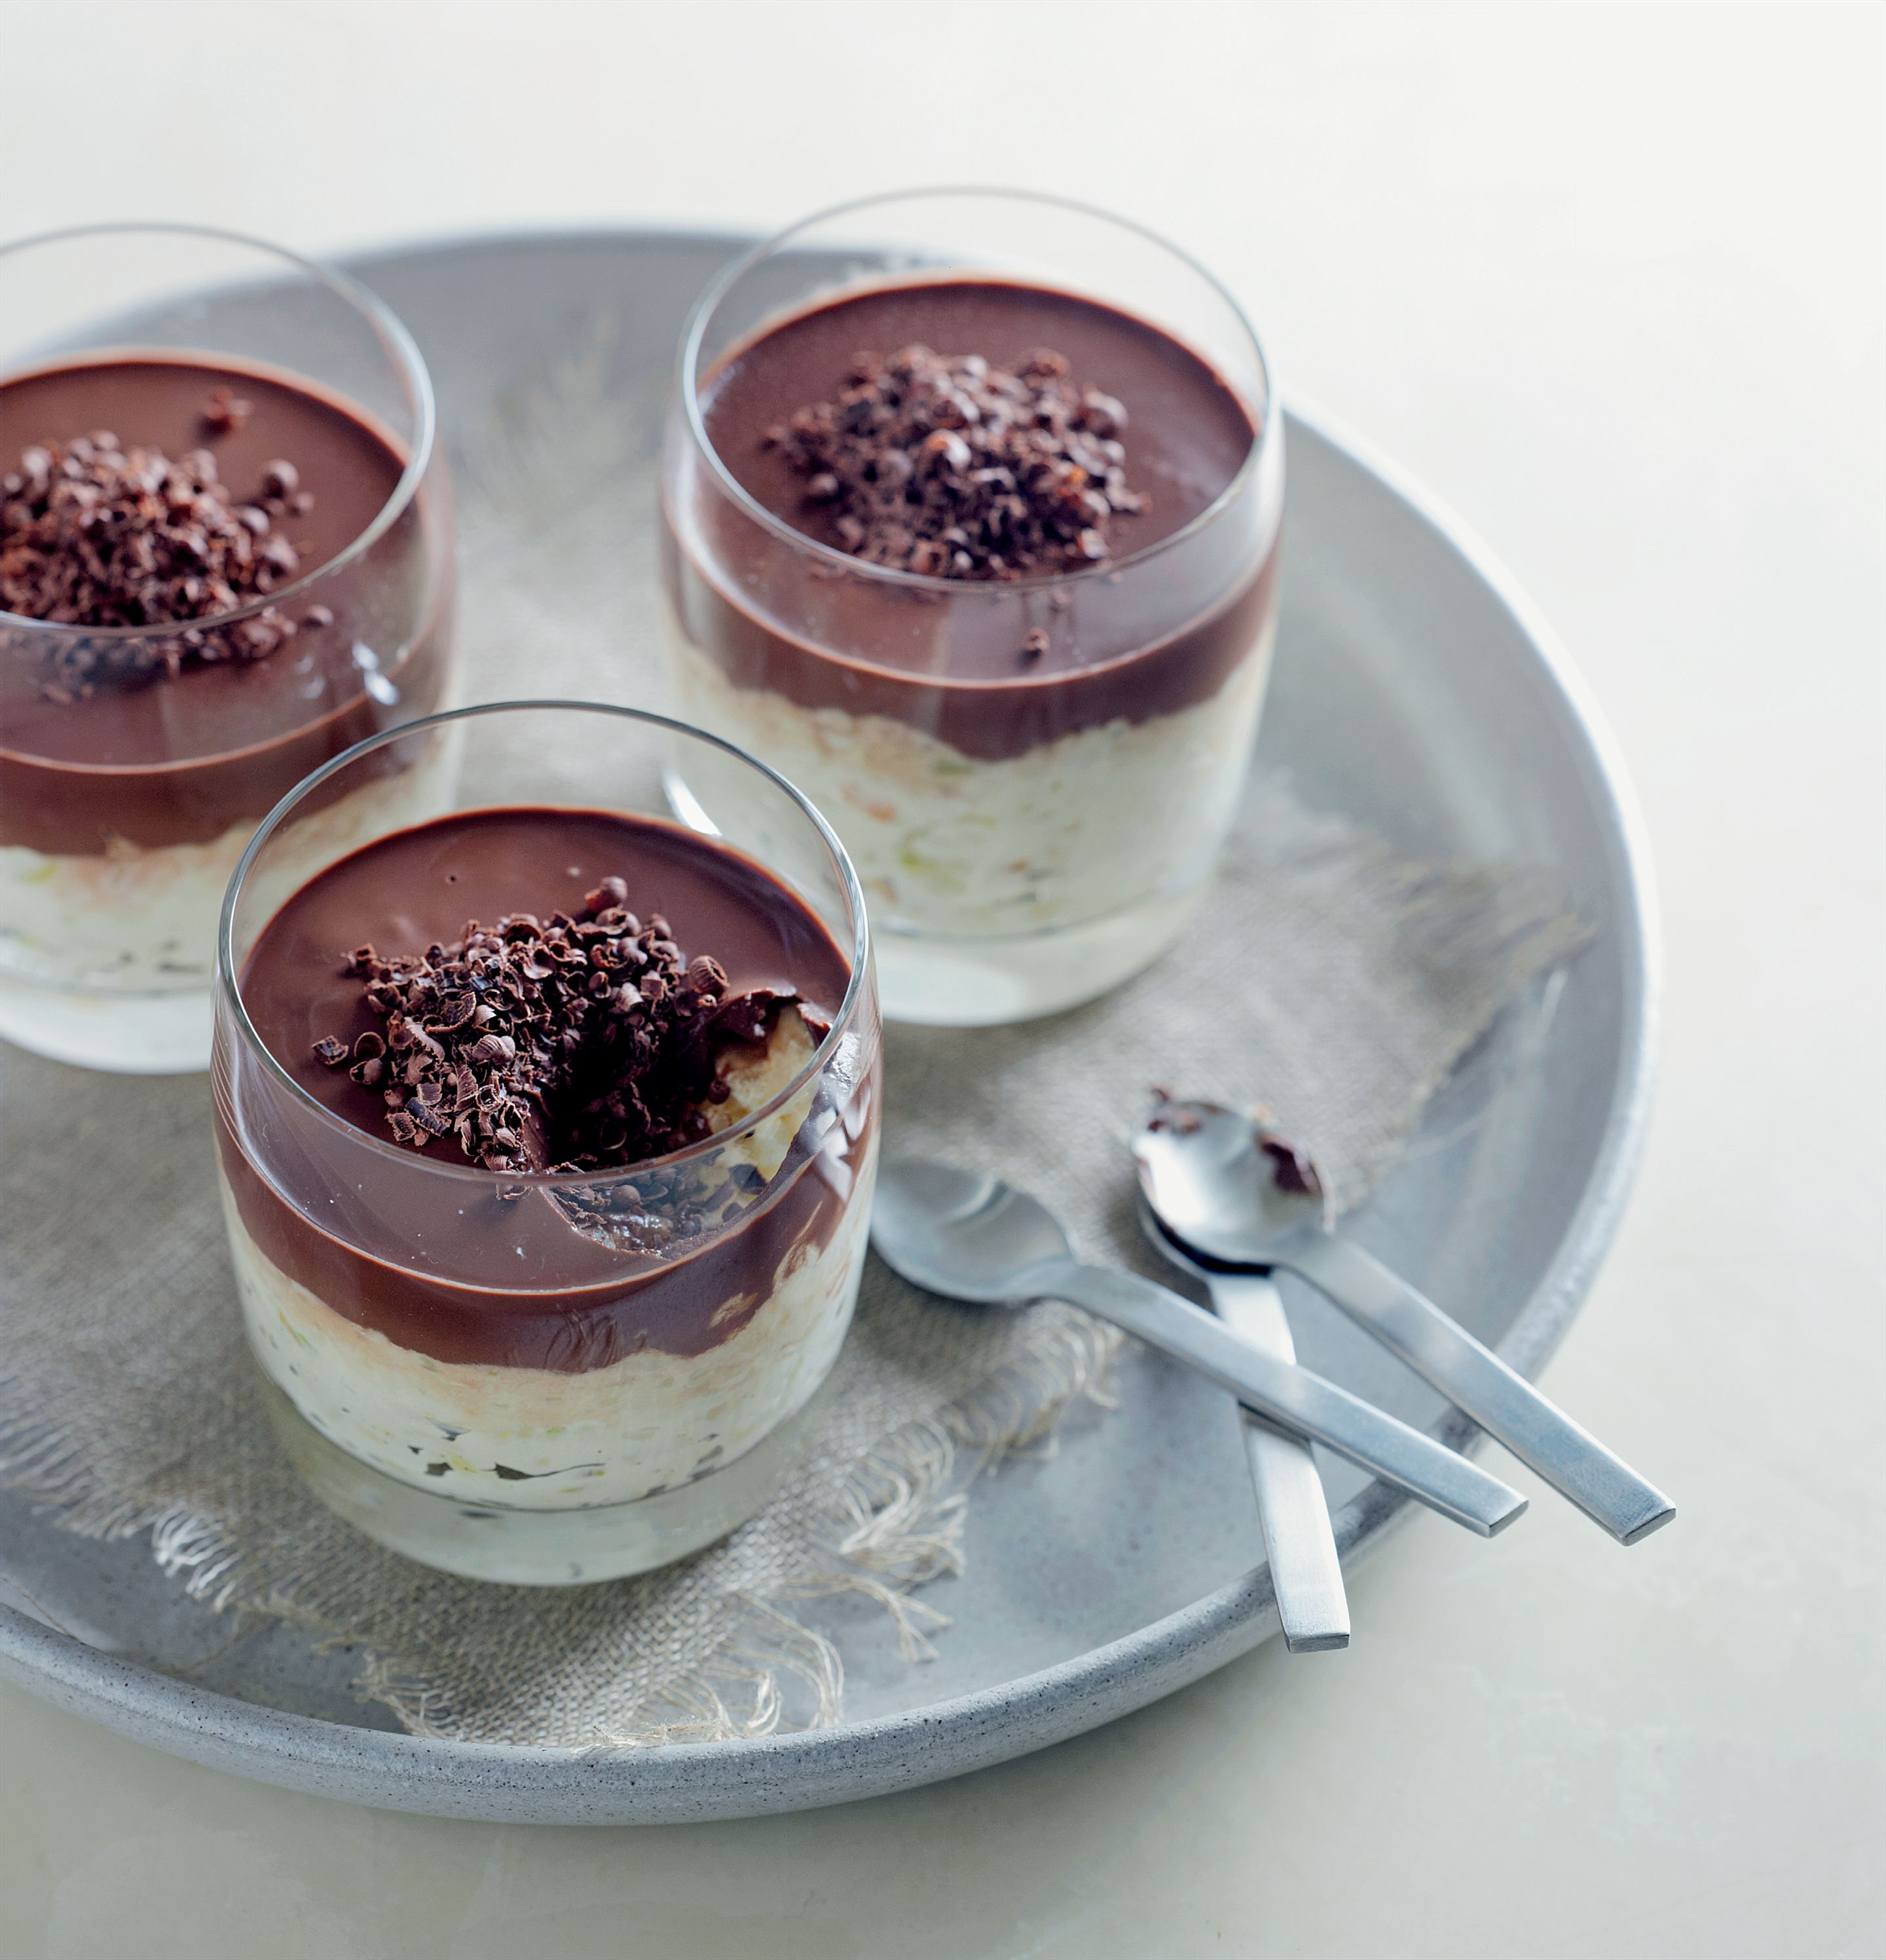 Rice pudding with glacé fruits and chocolate cream